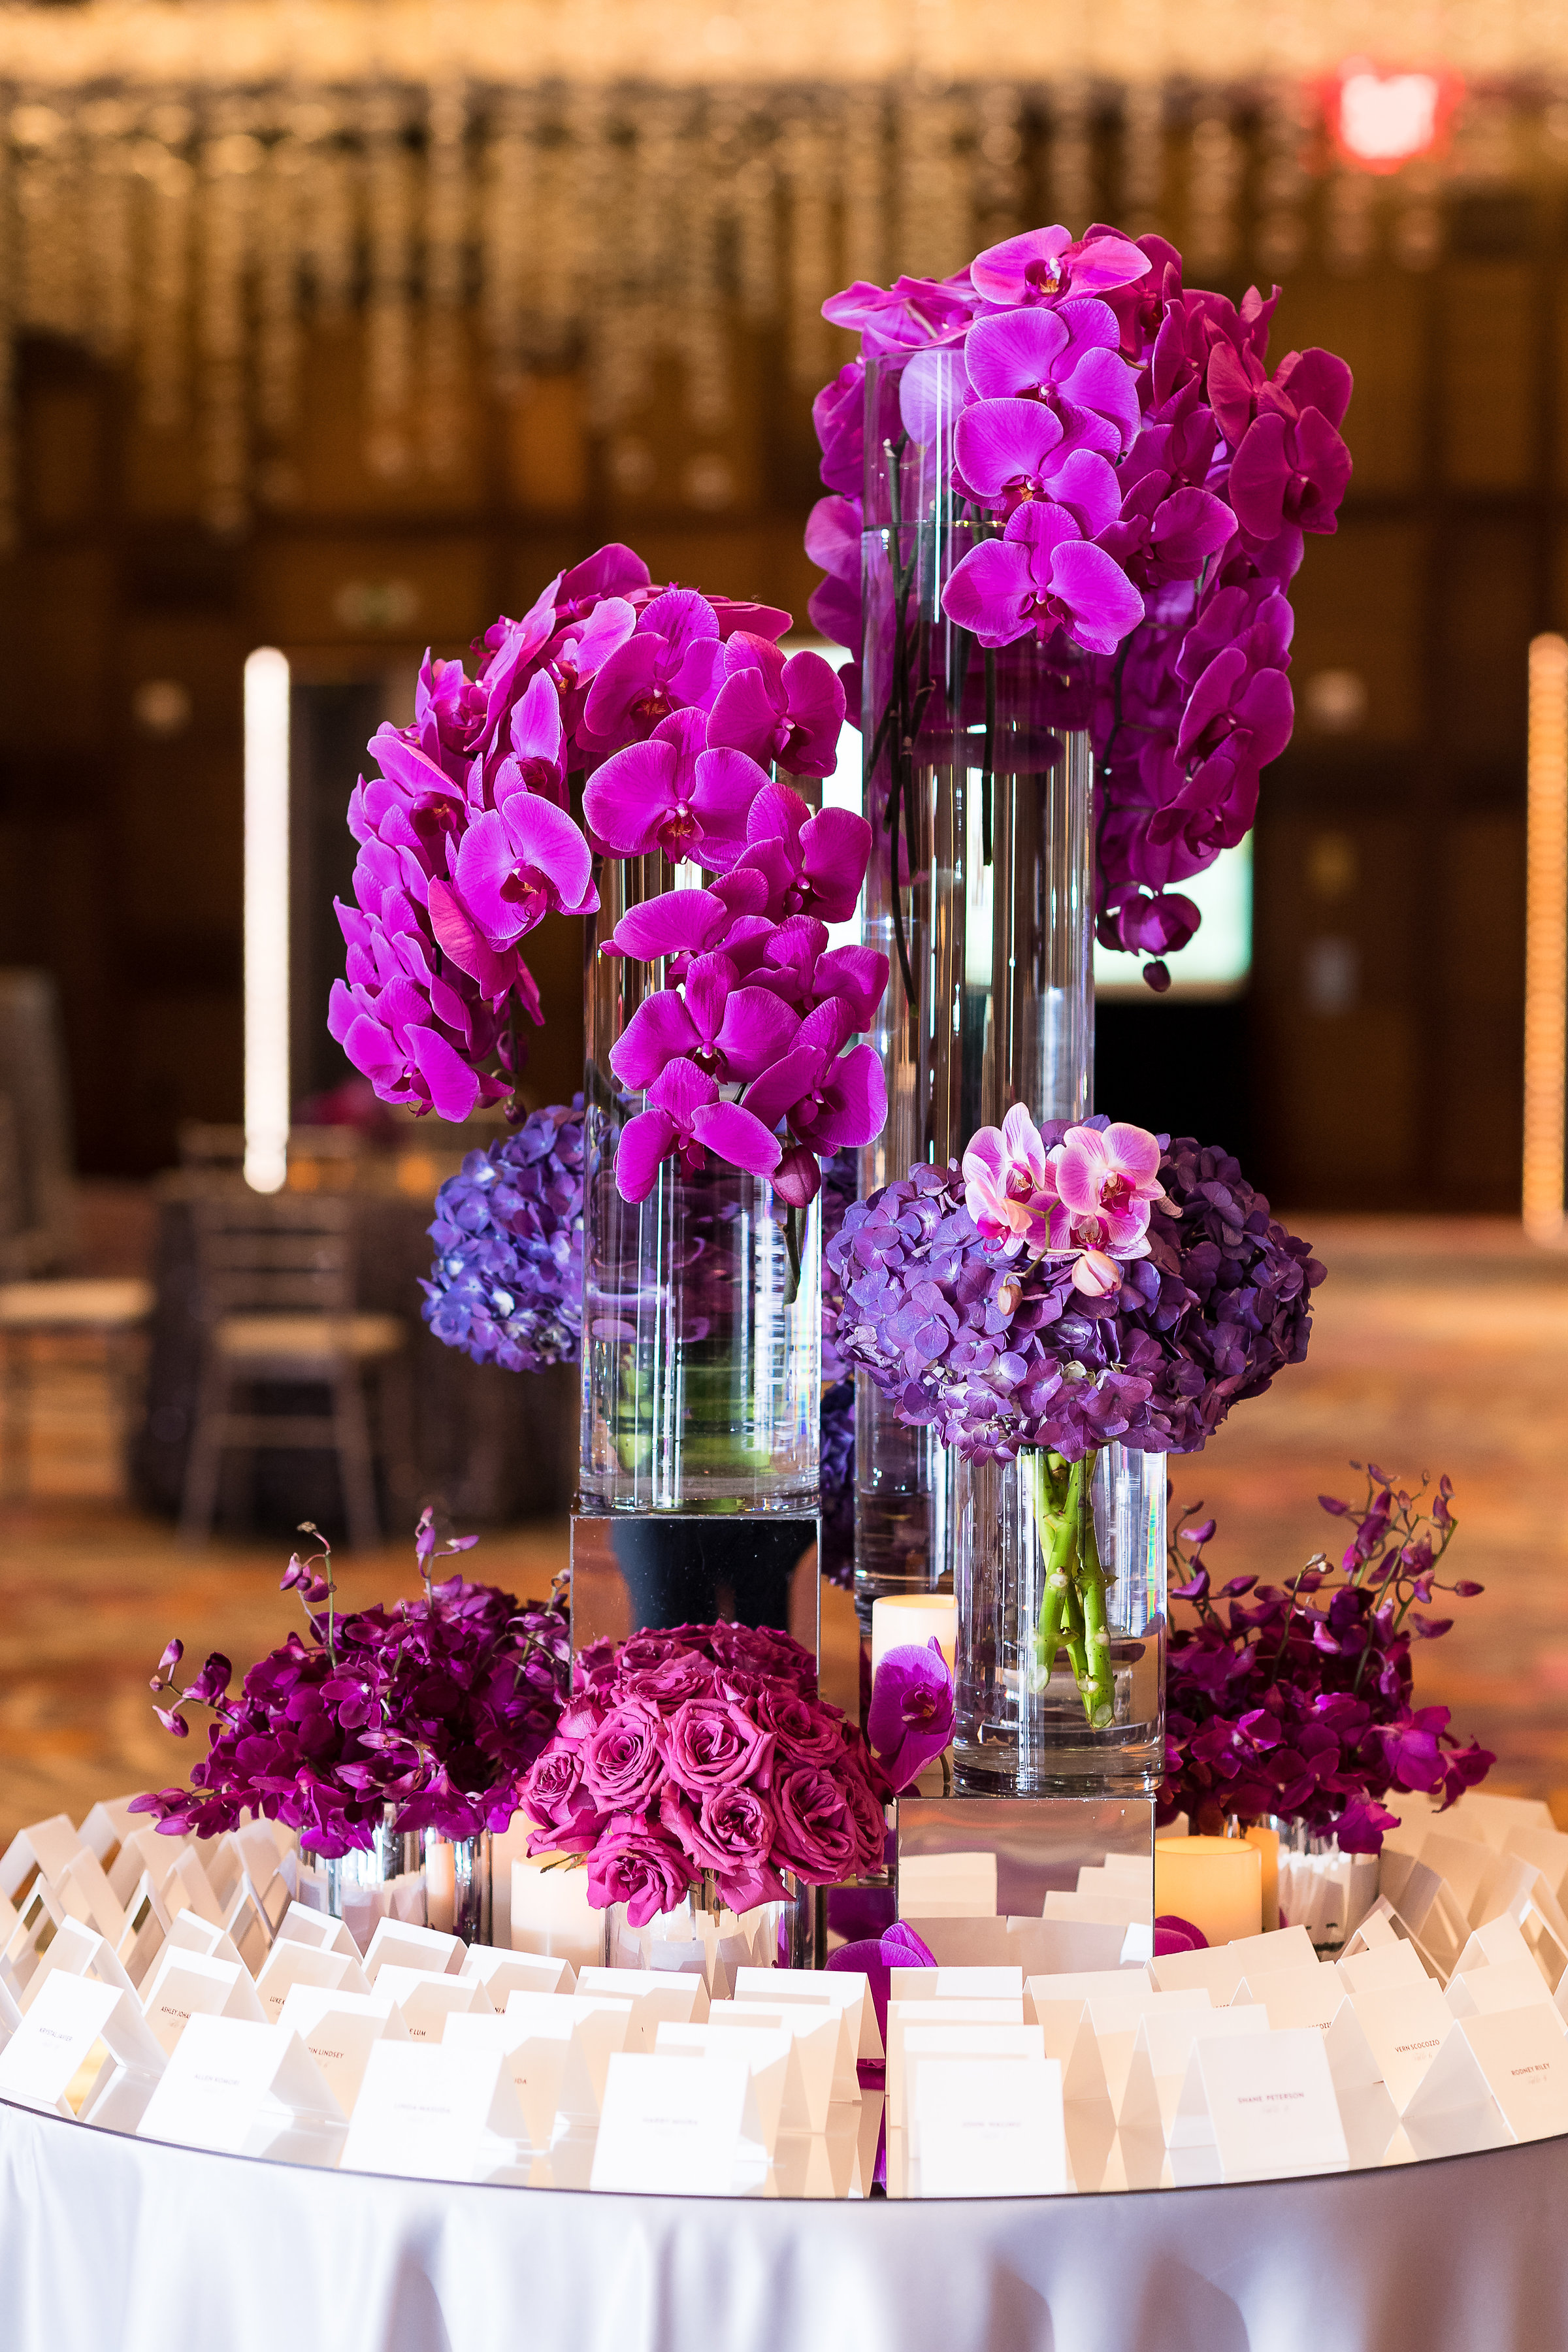 Escort card table with purple orchids